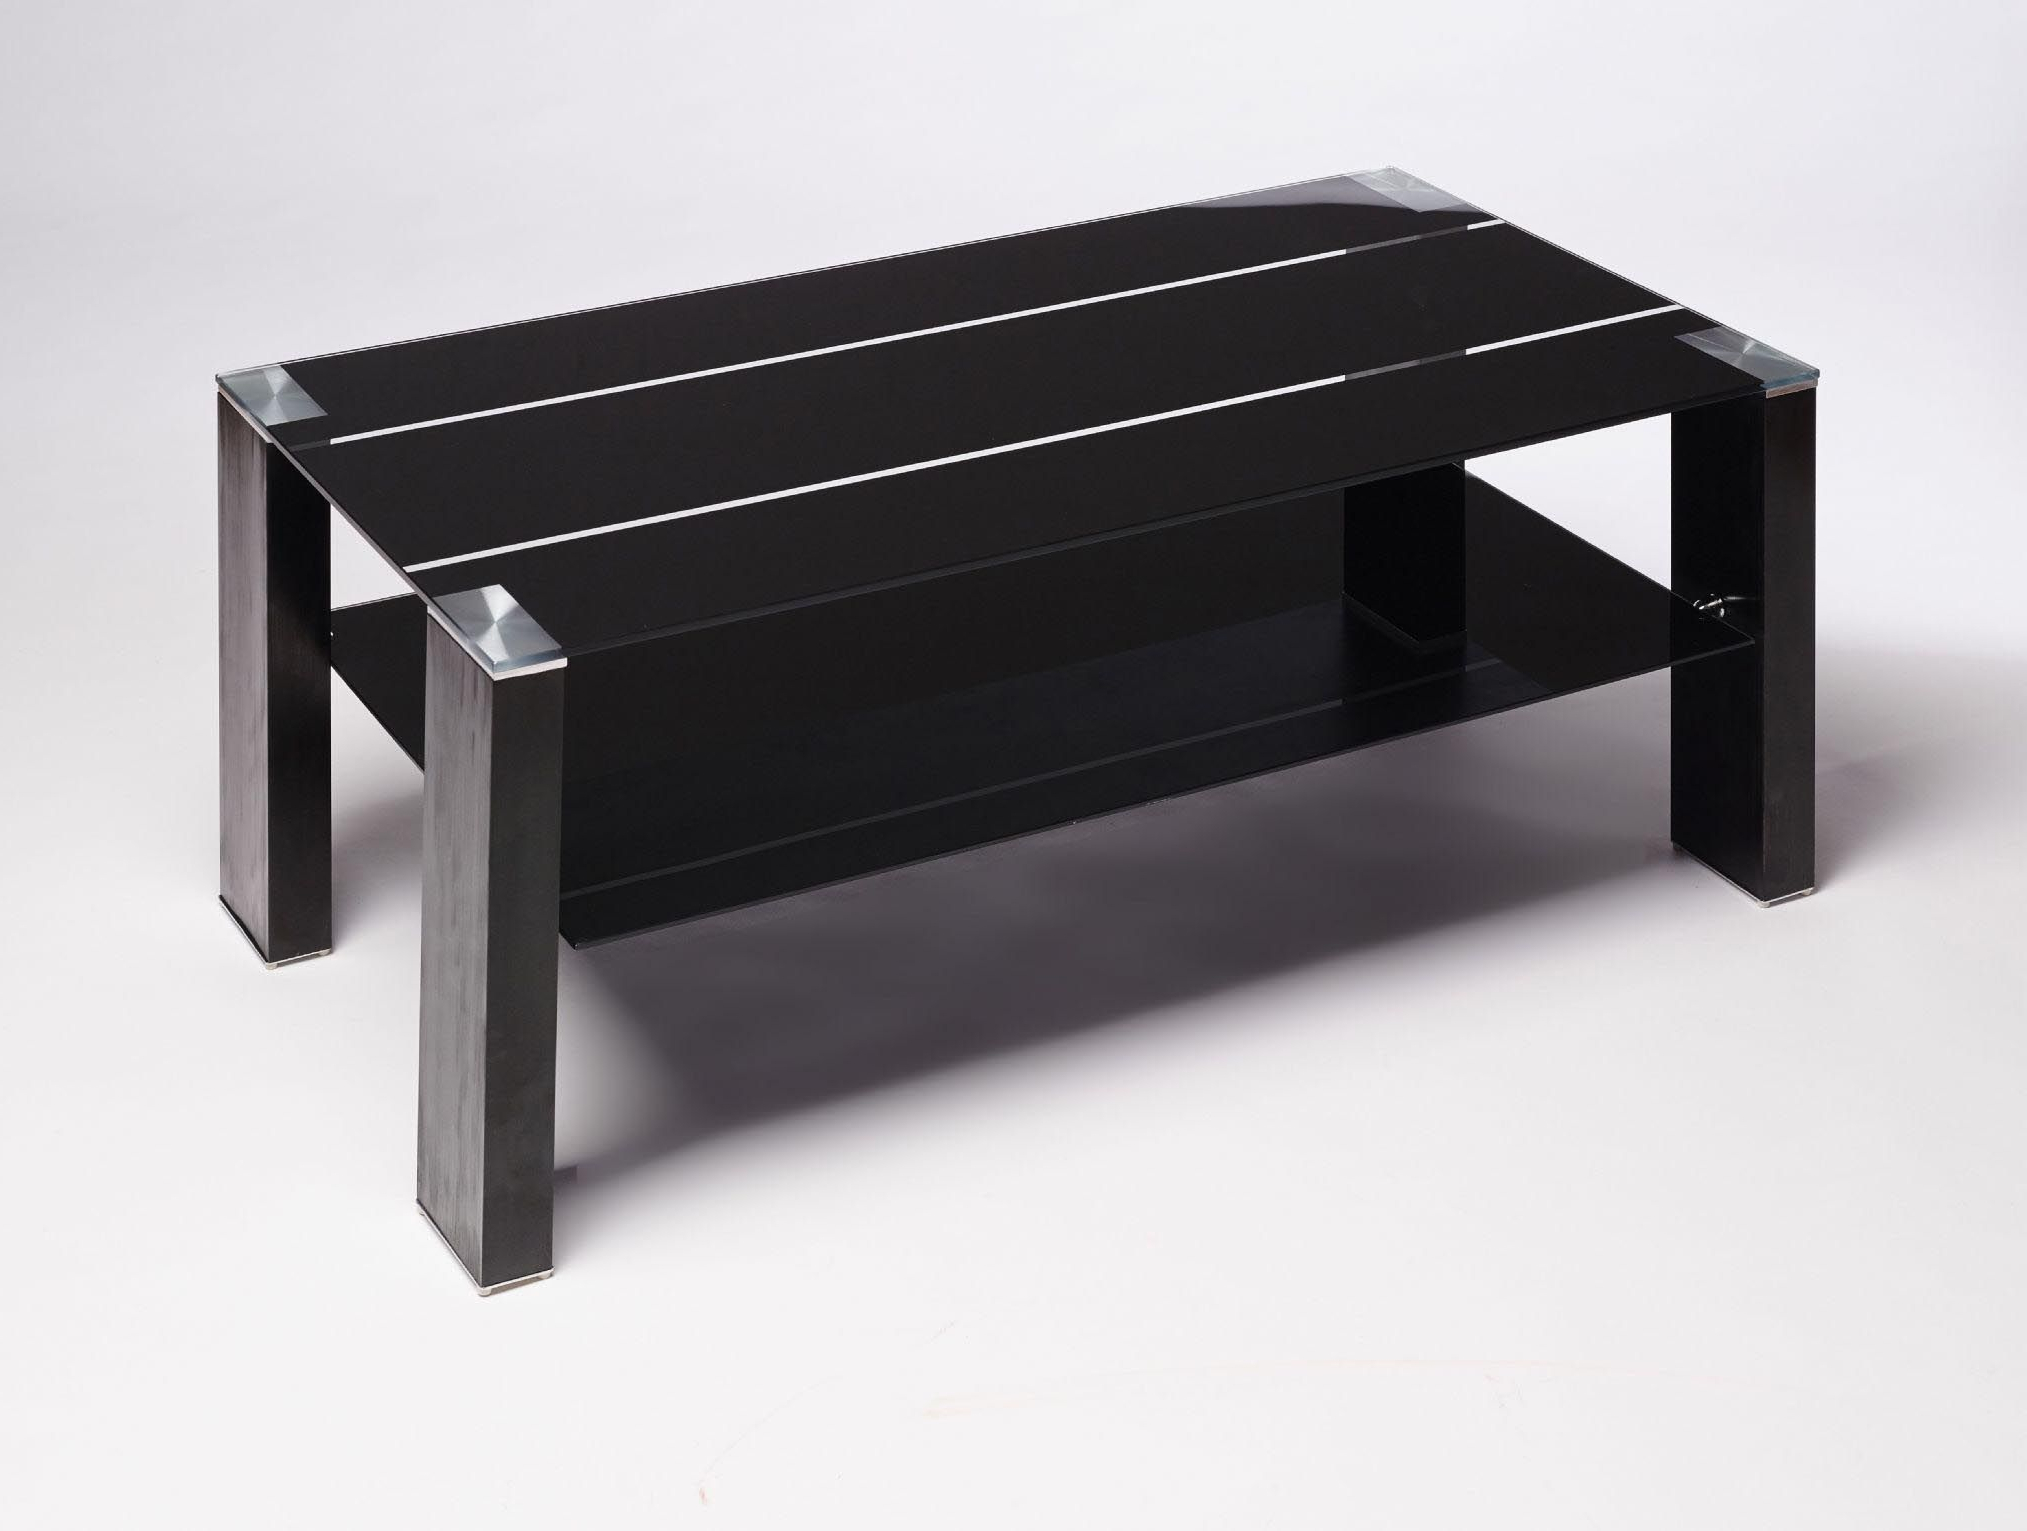 Black Glass Coffee Table Contemporary Modern Retro (View 5 of 20)